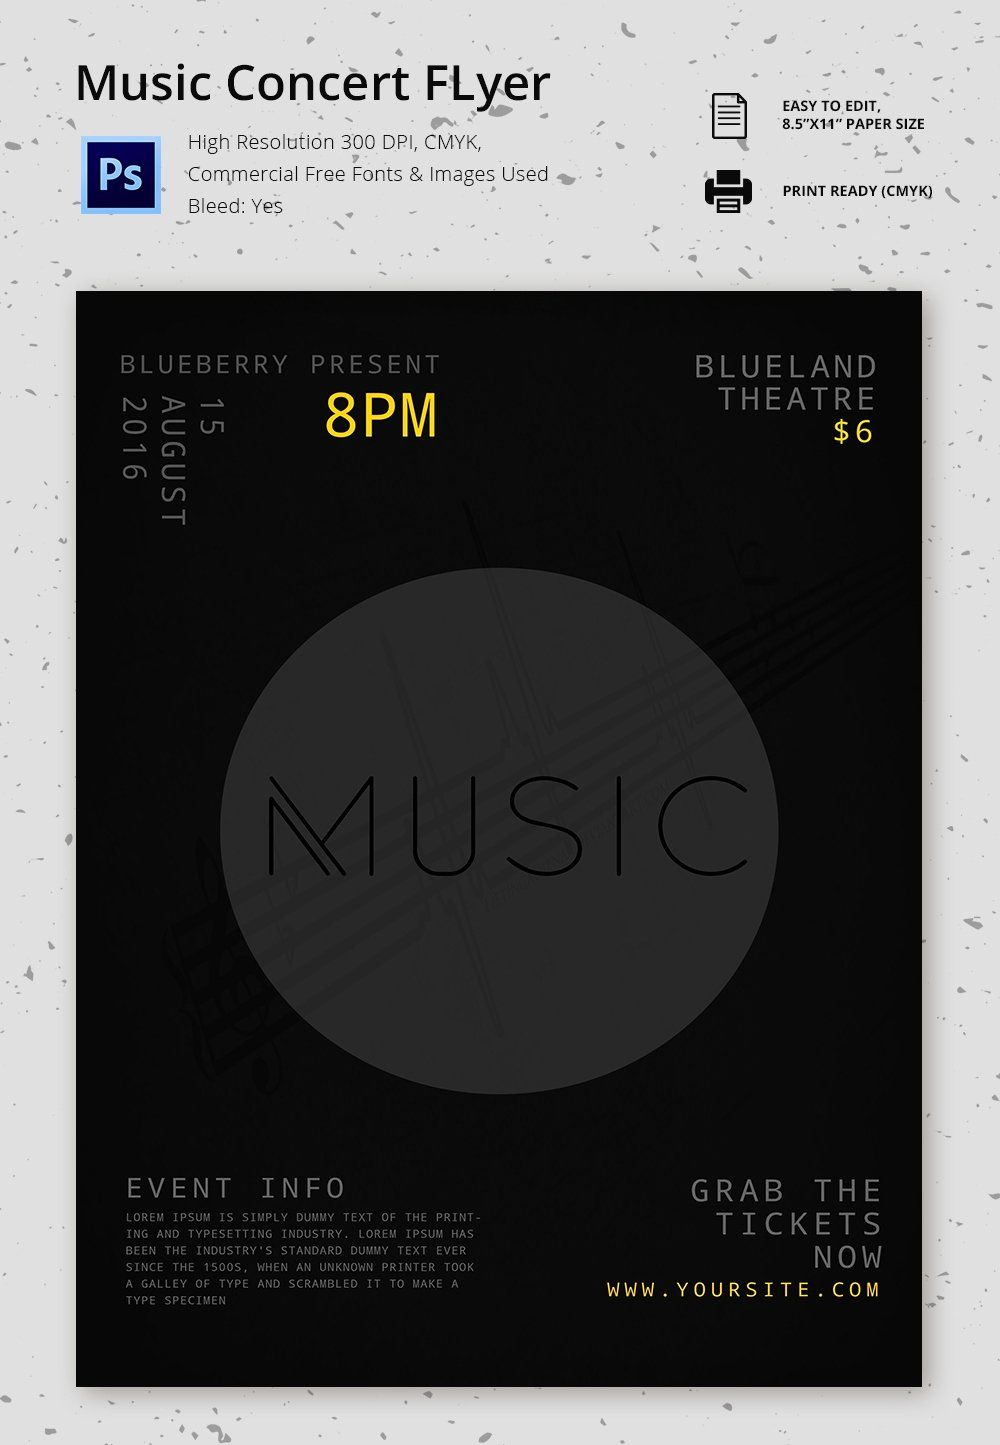 Concert Flyer Template Free Inspirational Concert Flyer Template 48 Psd format Download